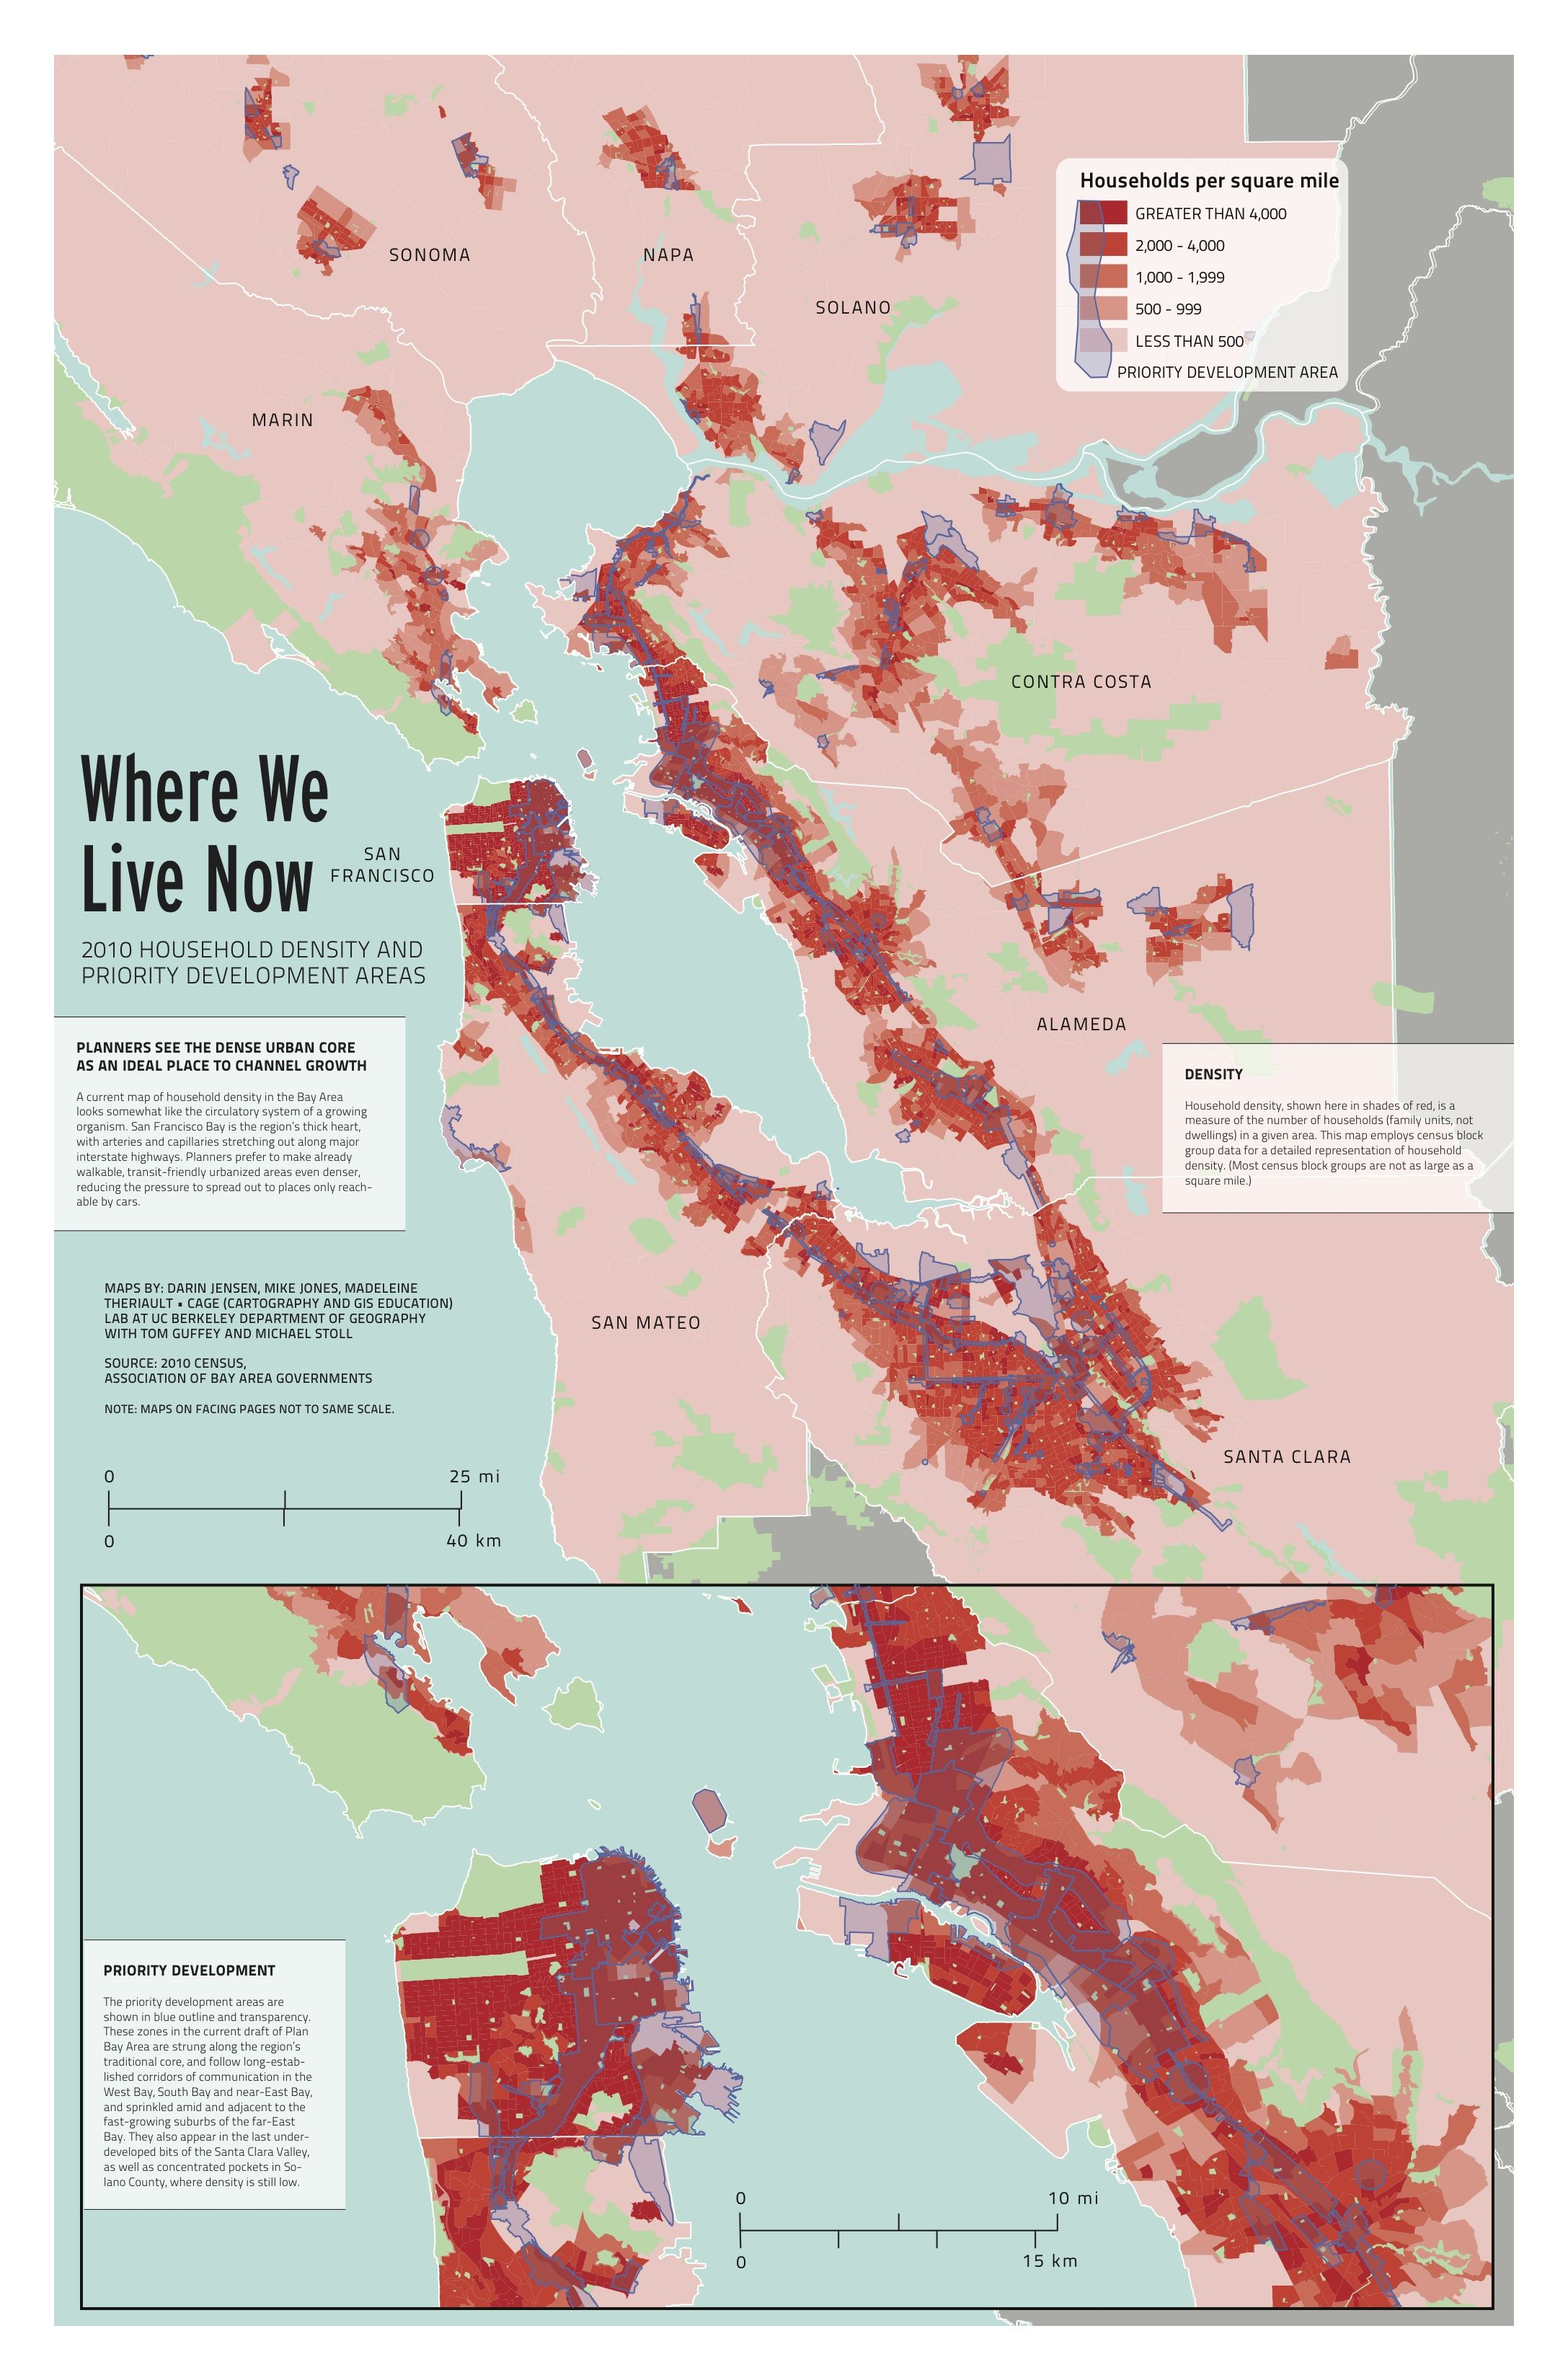 Population Density Map Of The Bay Area Courtesy San Francisco Public Press Cool Live In The Now California State Government Map Alameda, contra costa, marin, napa, san francisco, san mateo, santa clara, solano and sonoma. population density map of the bay area